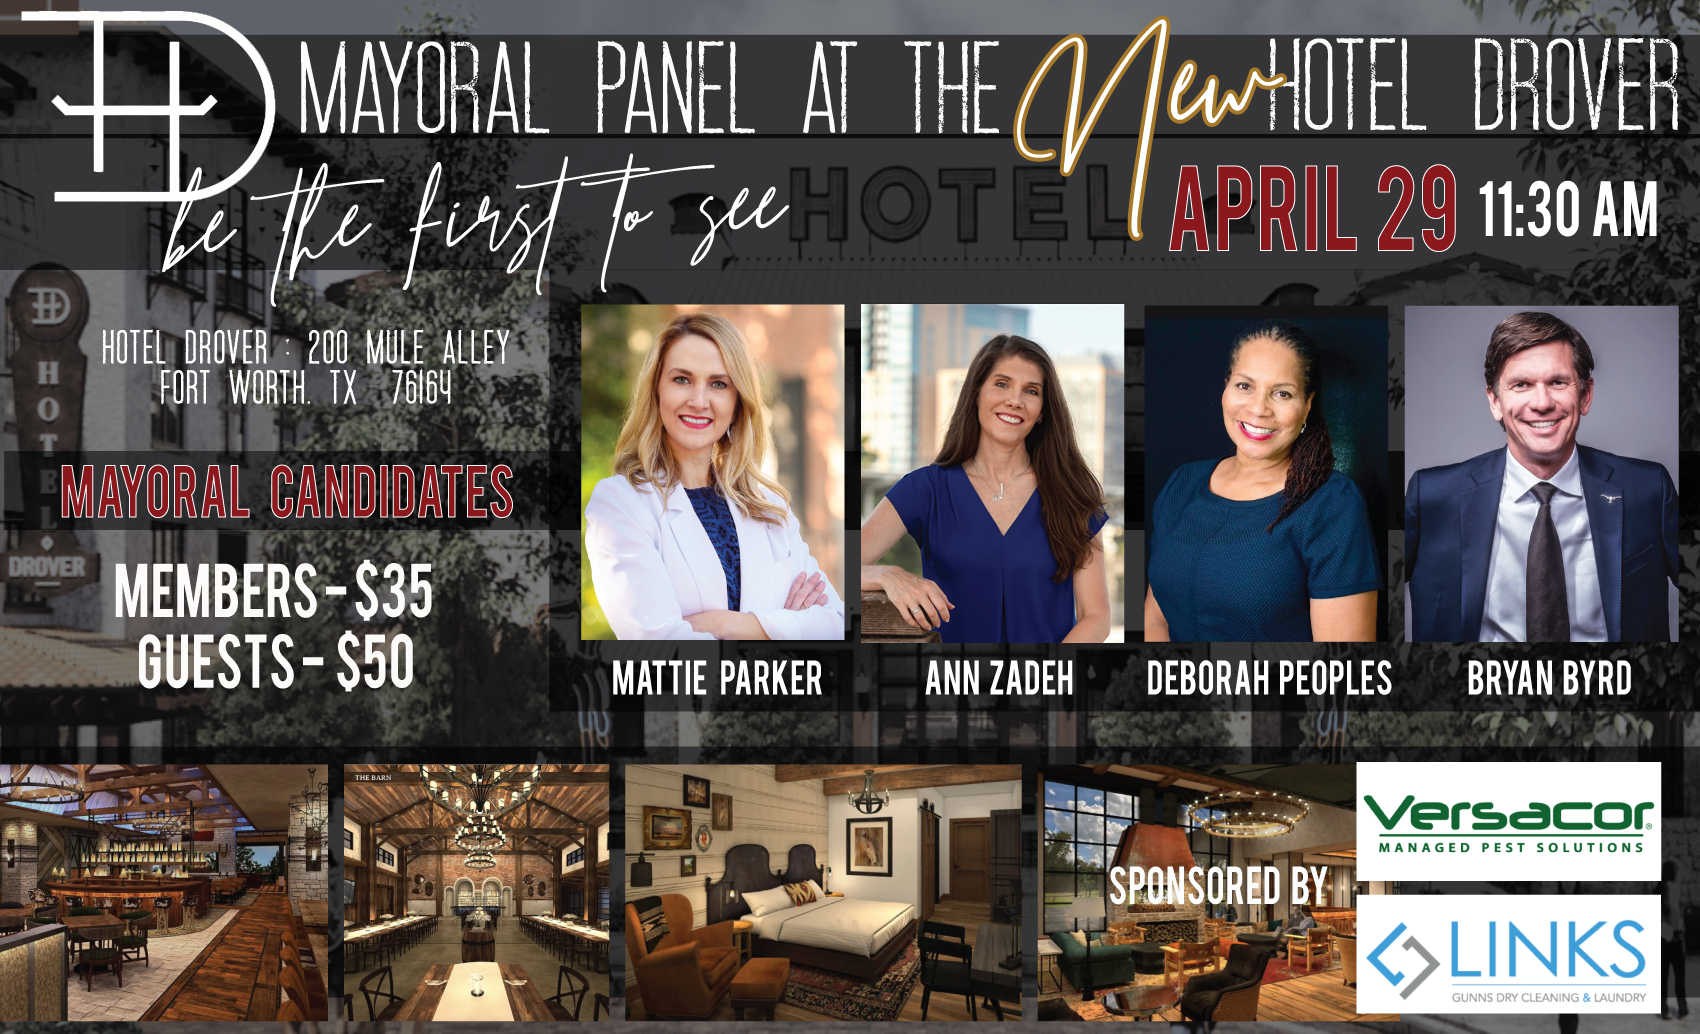 Mayoral Forum at the NEW Hotel Drover